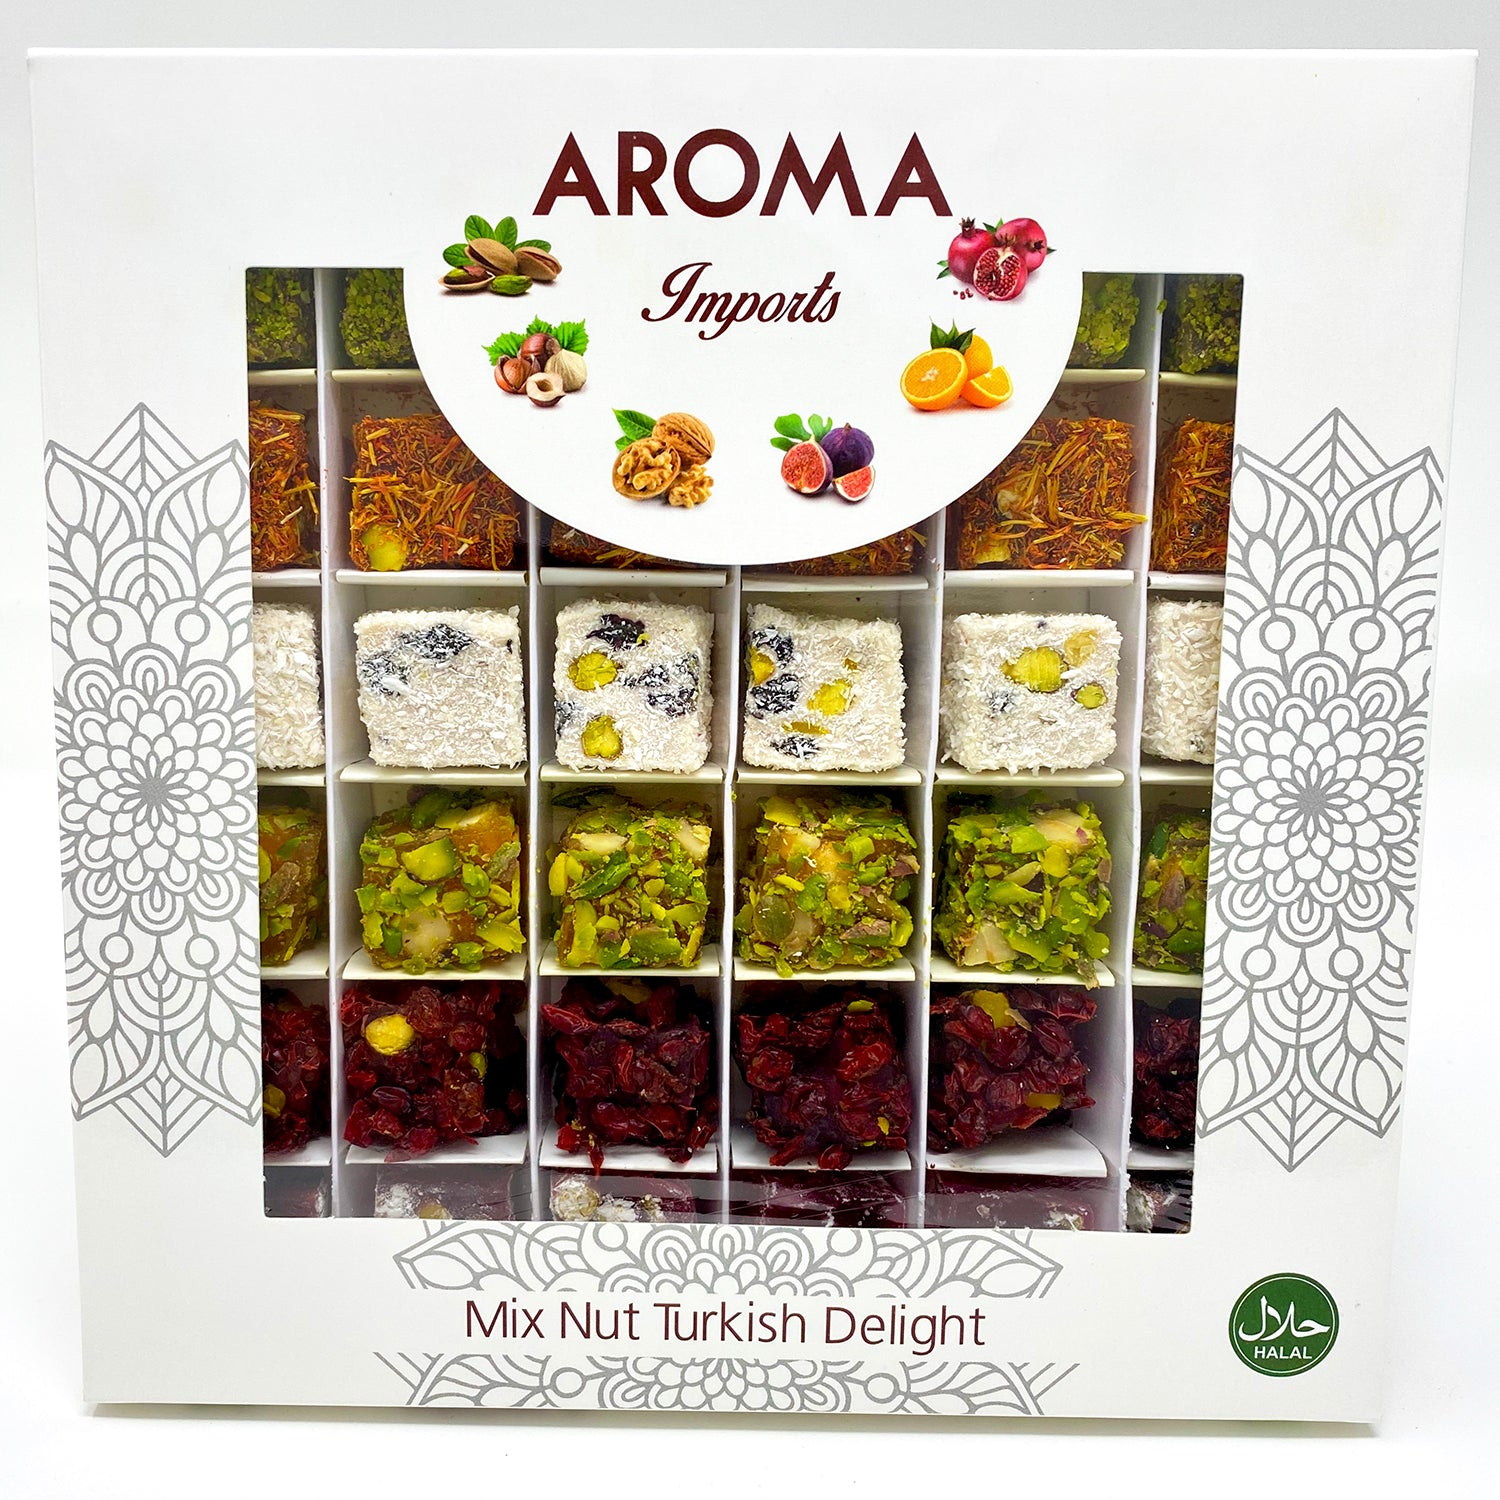 Mixed Nut Turkish Delight - Aroma Imports